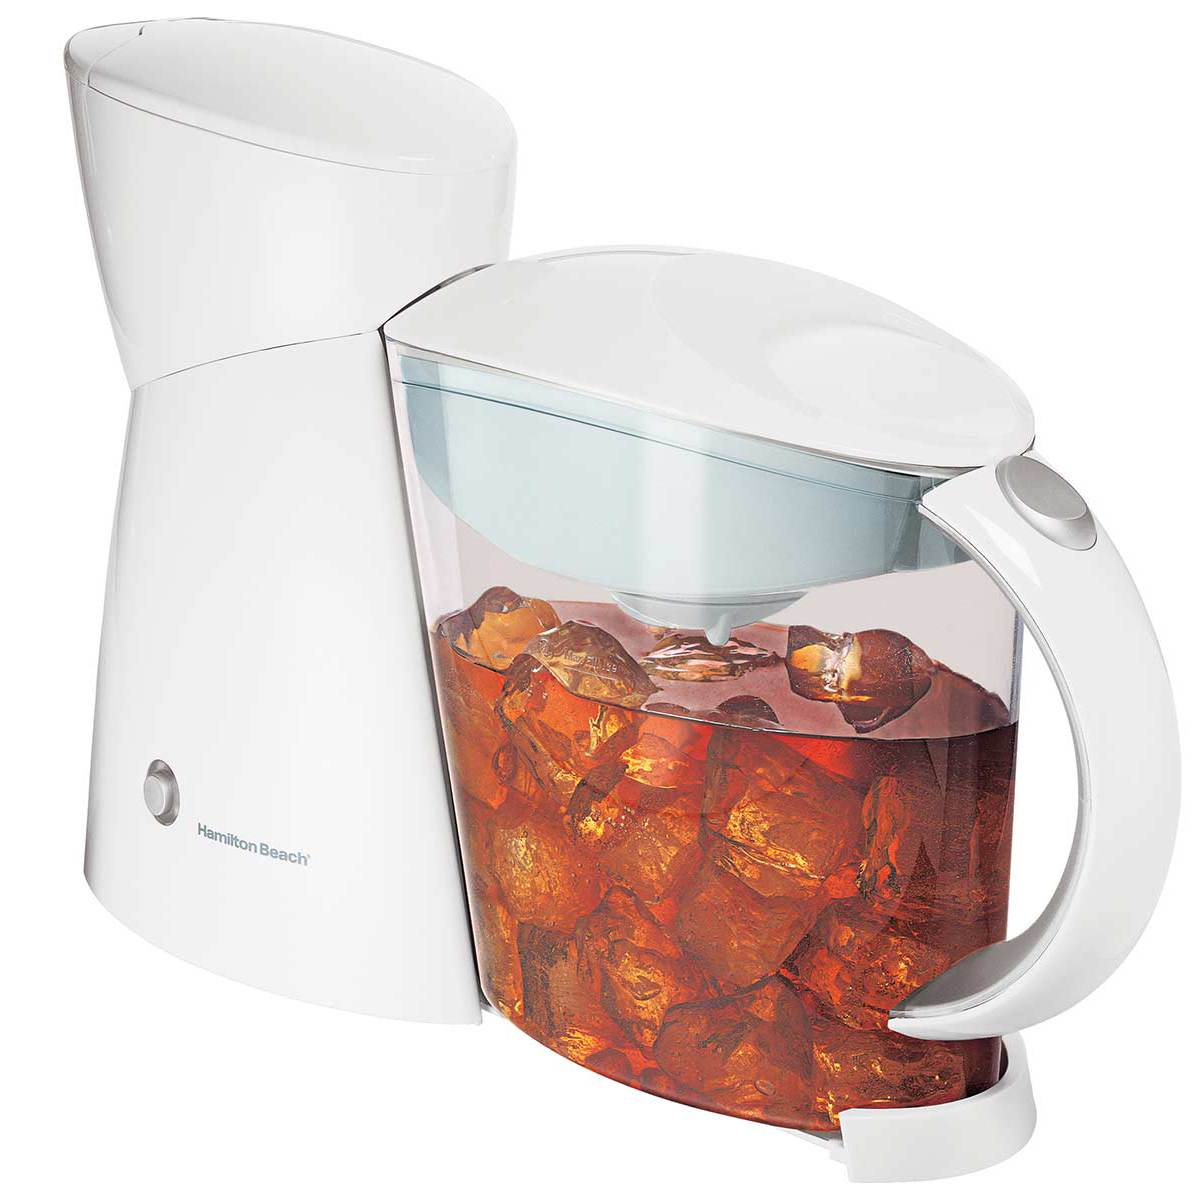 Iced Tea Maker (40911)